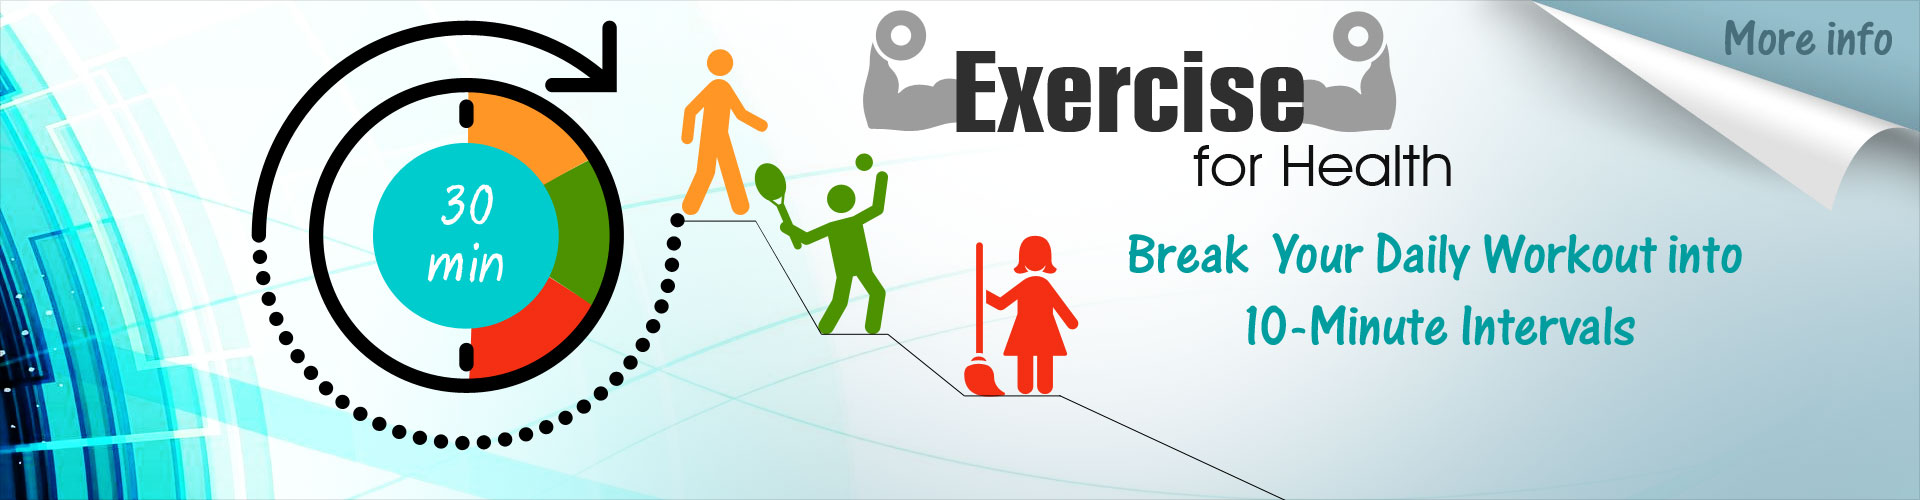 Exercise for Health - Break Your Daily Workouts into 10-minute Intervals